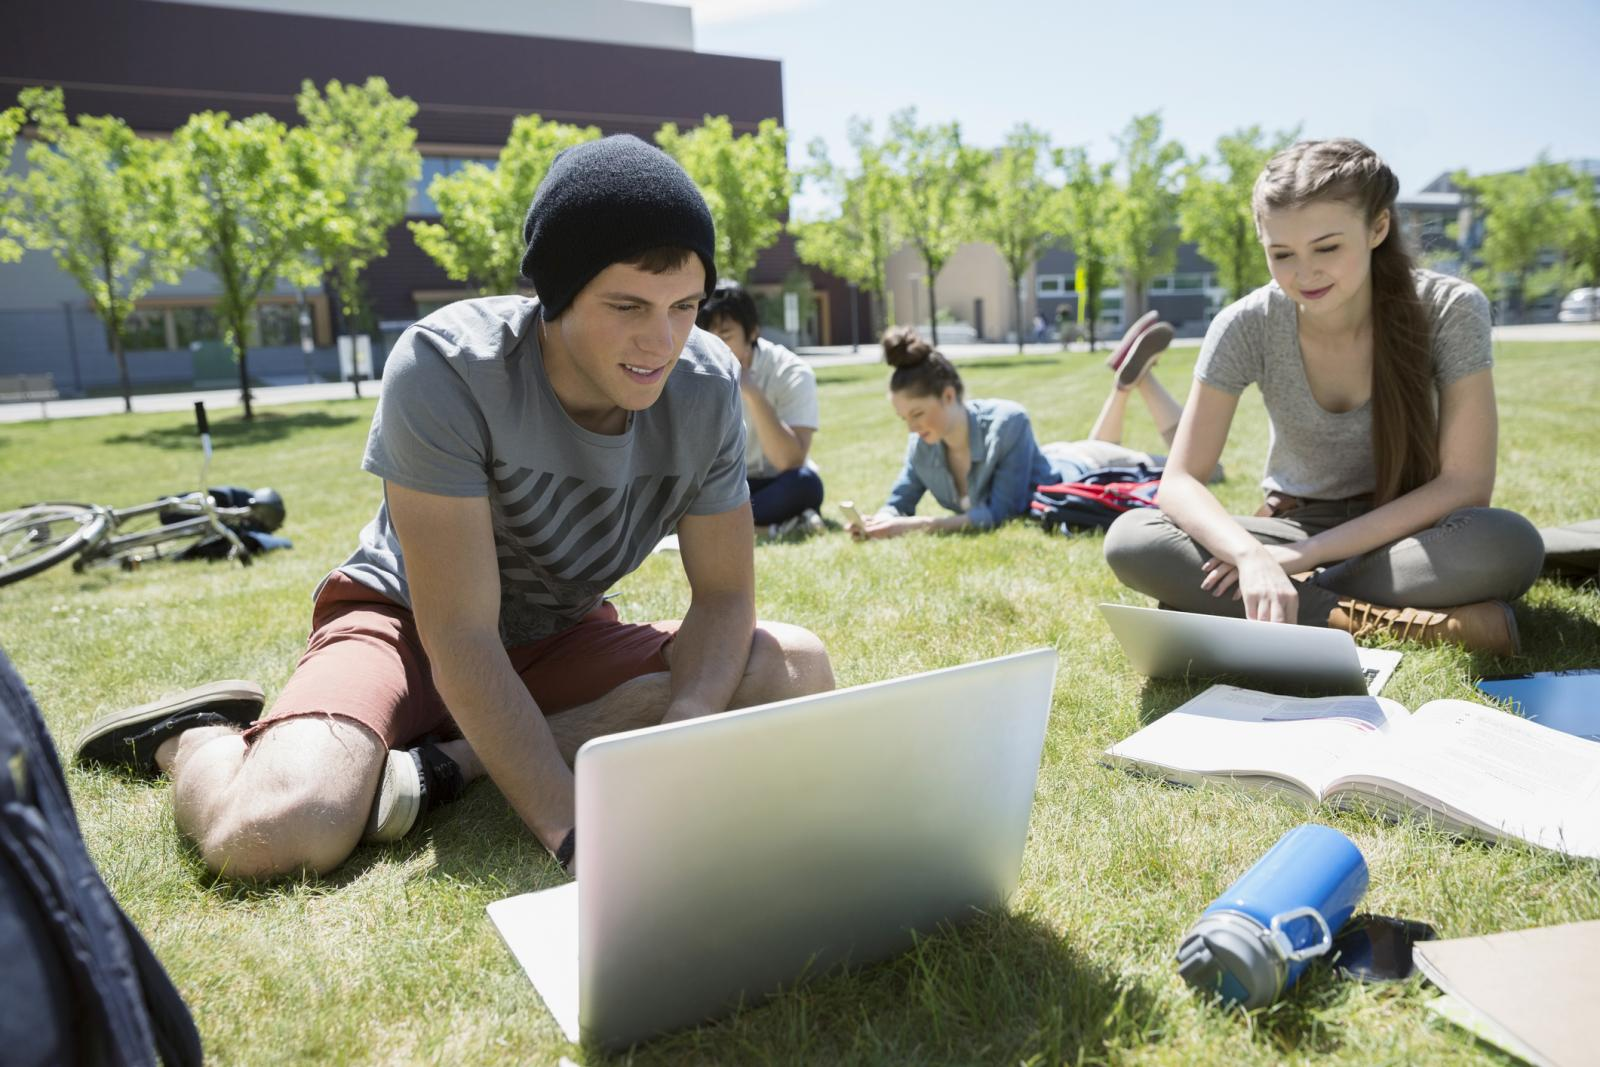 Students with laptops studying on sunny campus lawn